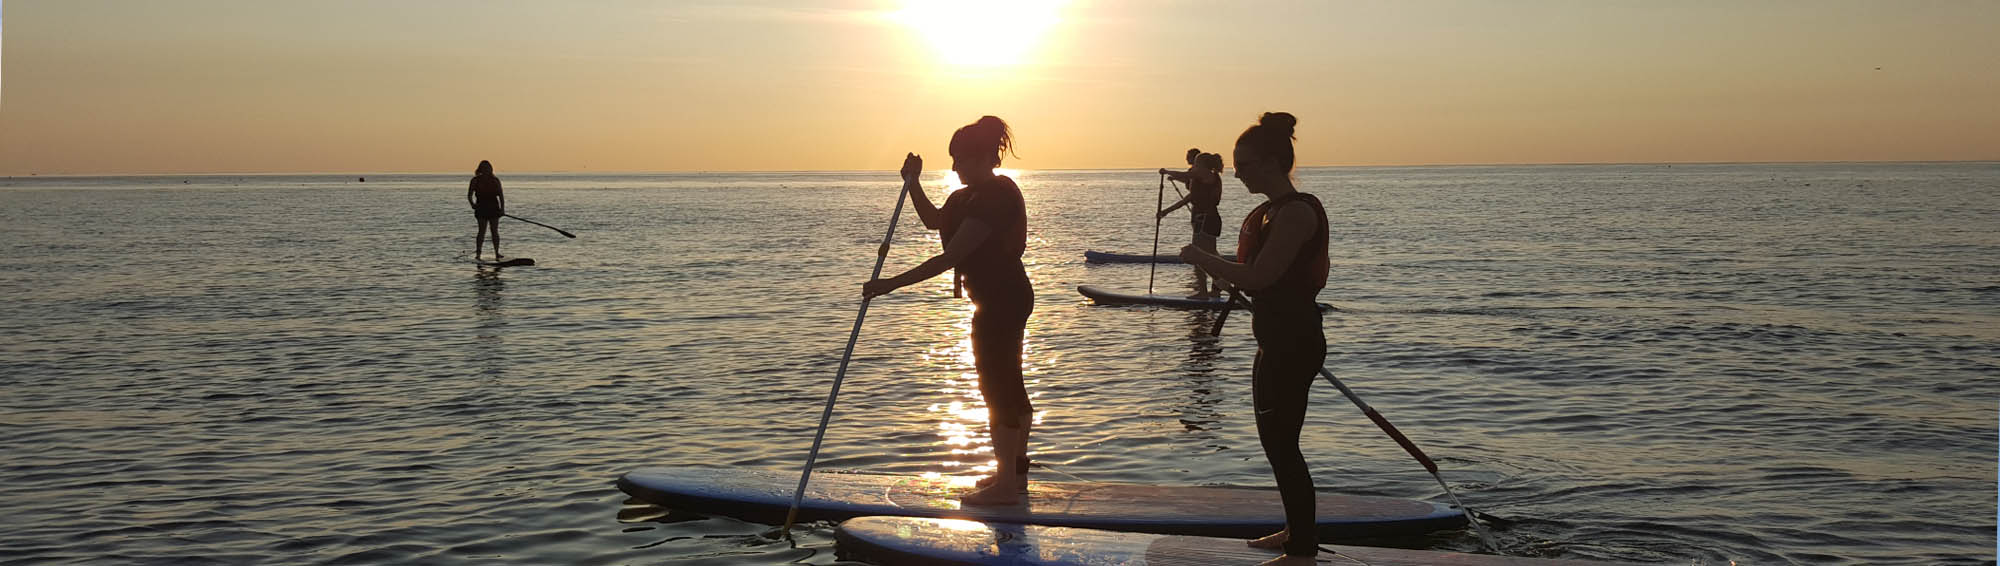 Stand Up Paddleboard Lessons in Norfolk